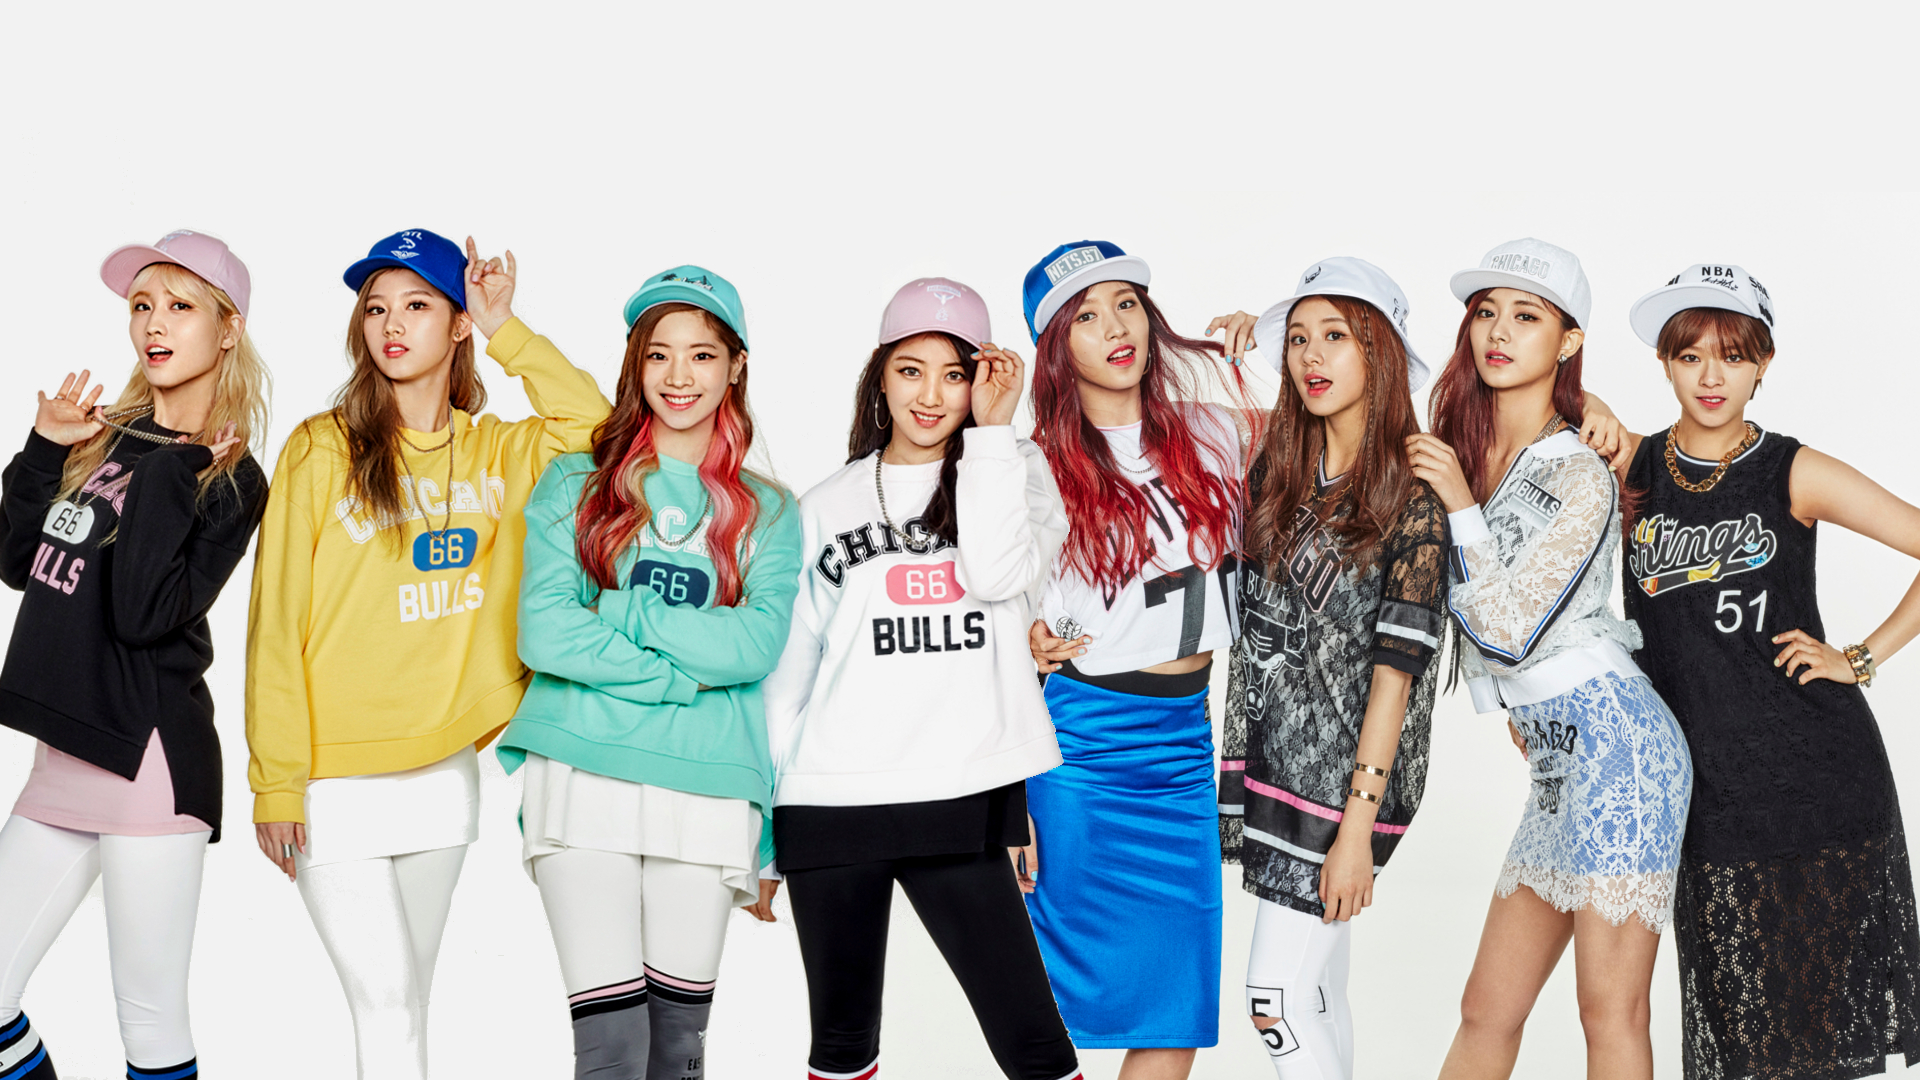 Twice Jyp Ent Images Twice Hd Wallpaper And Background Photos